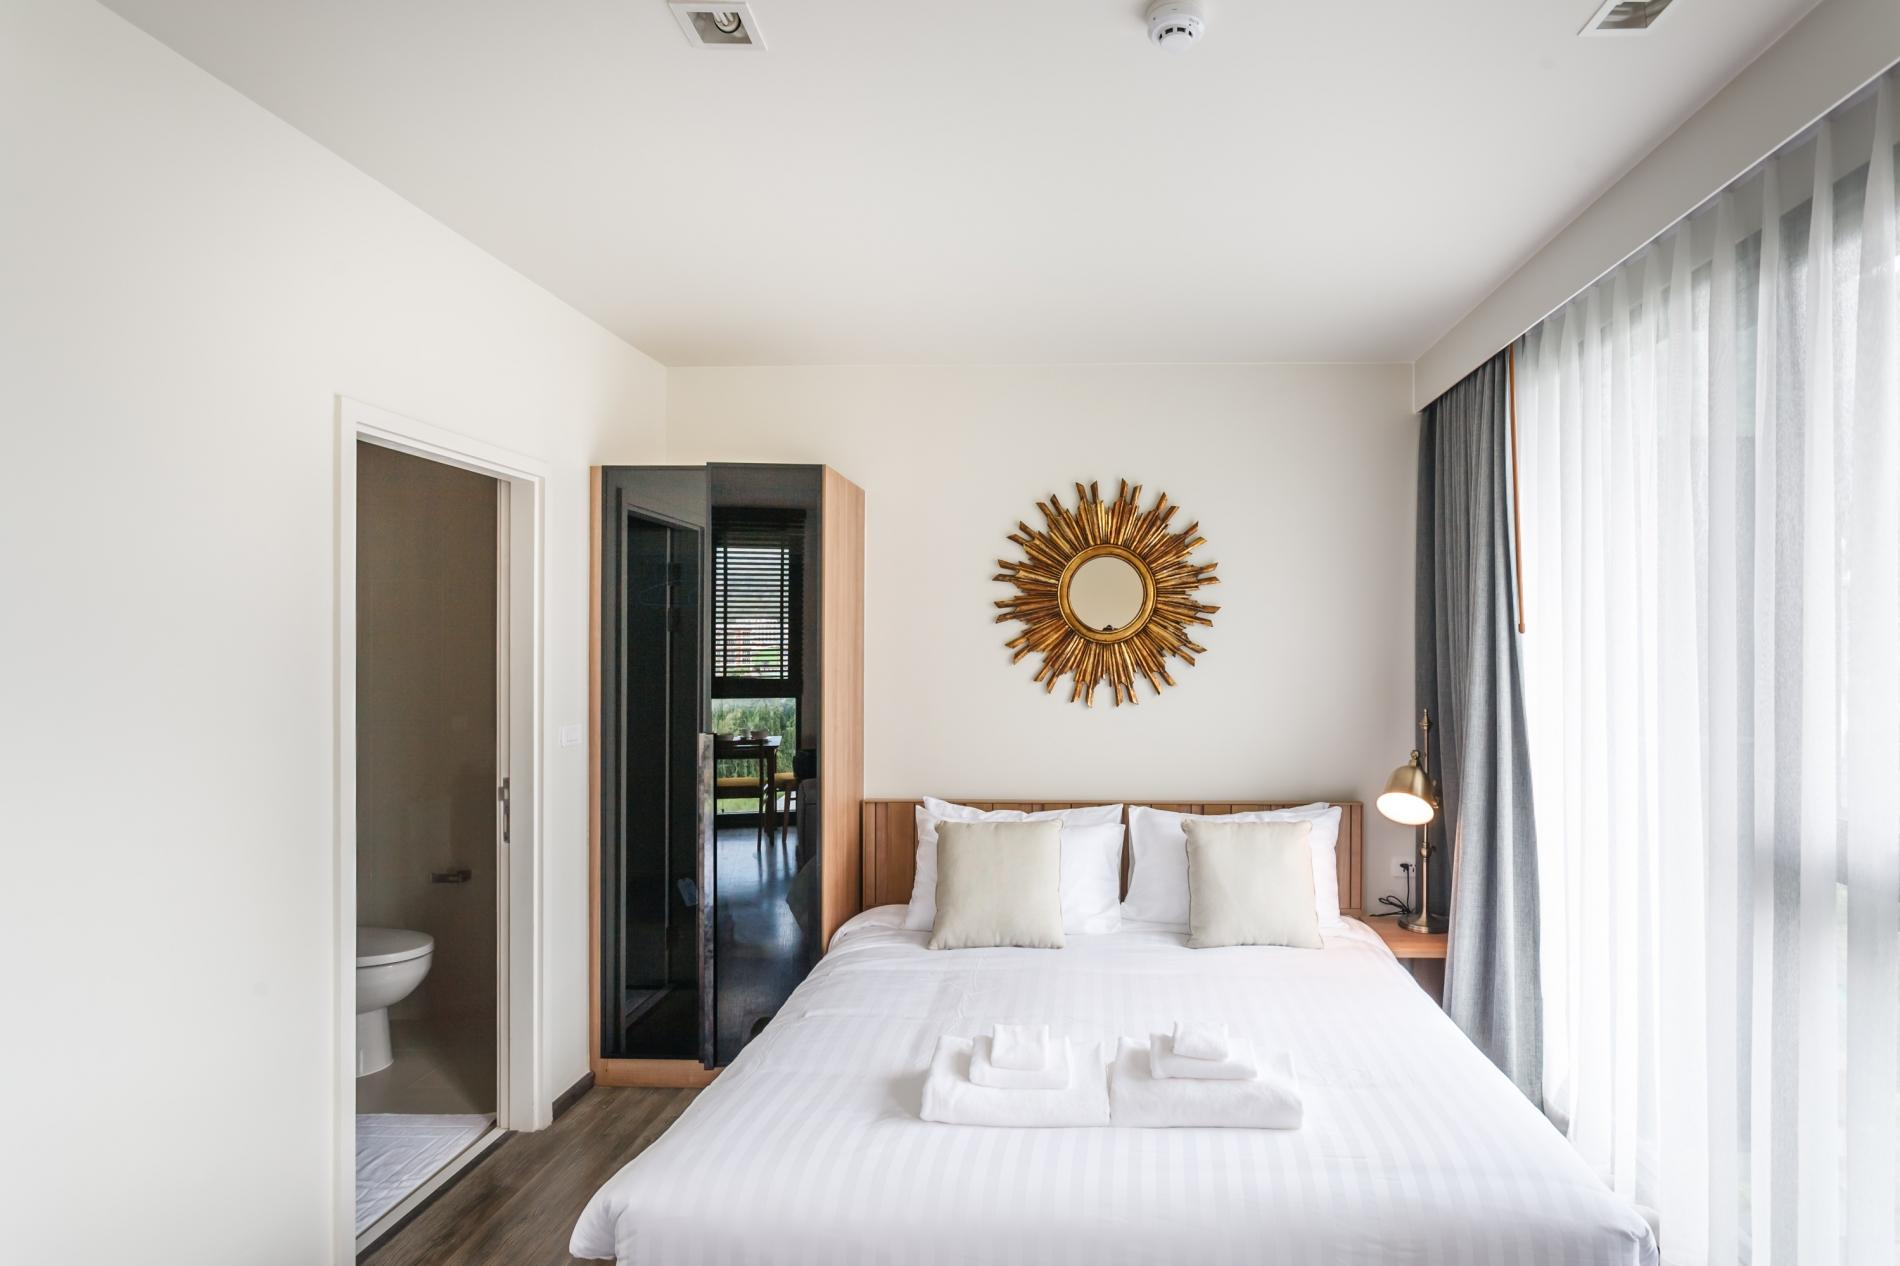 Apartment D219 - Brand new Patong studio  convenient location  great value  photo 20256736